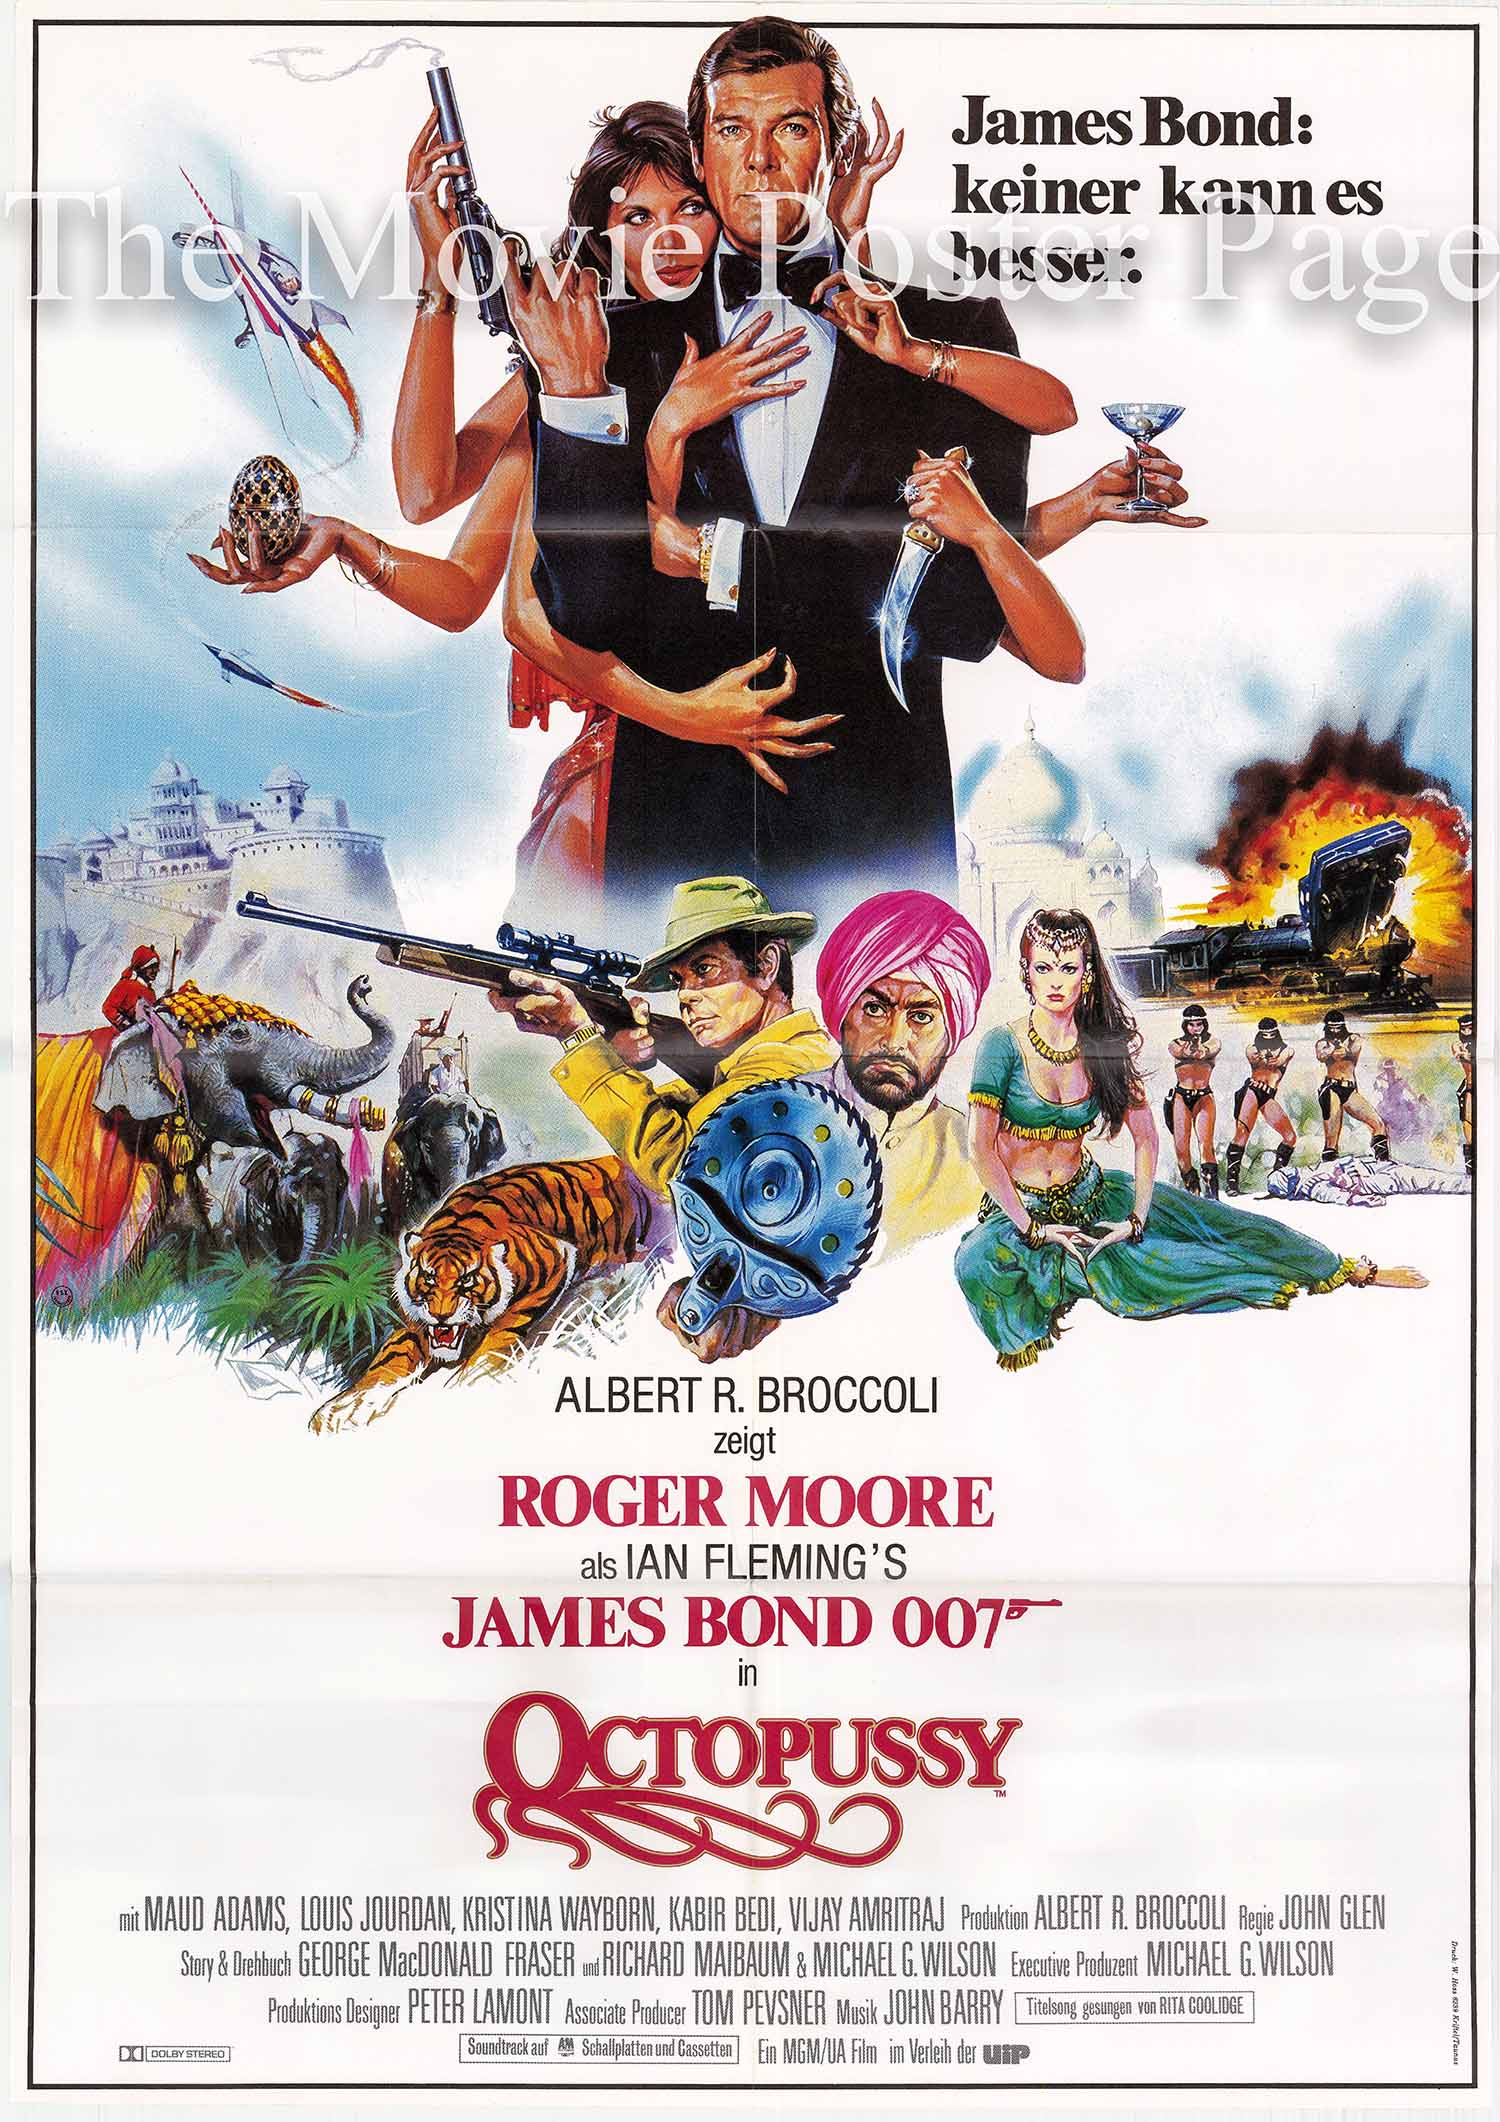 Pictured is a German one-sheet poster made to promote the 1983 John Glen film Octopussy starring Roger Moore as James Bond.